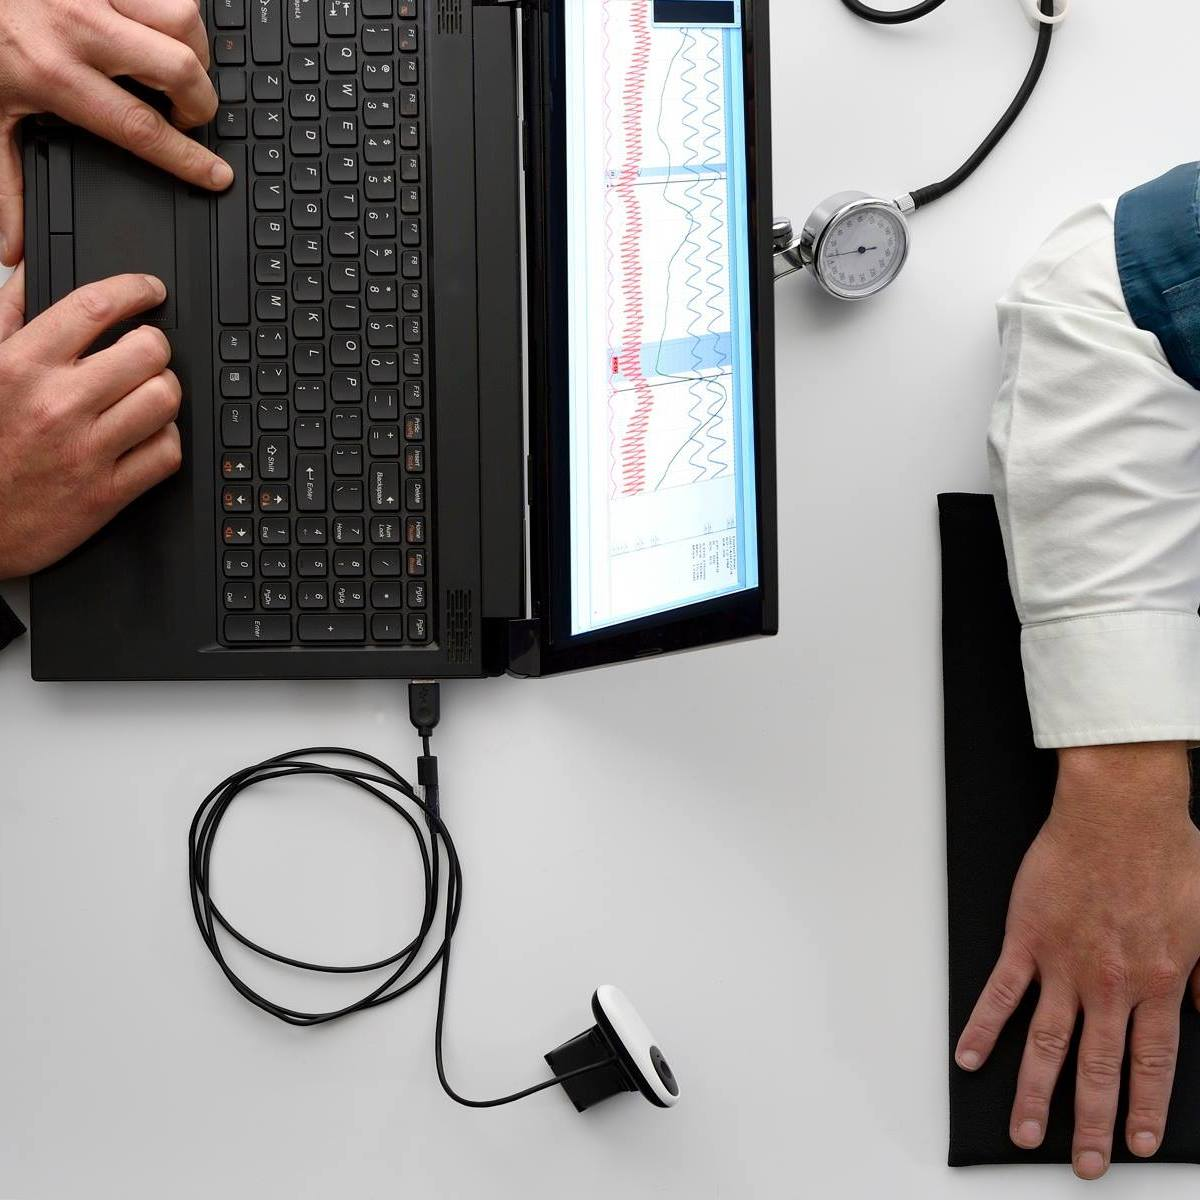 Specialized Polygraph Tests